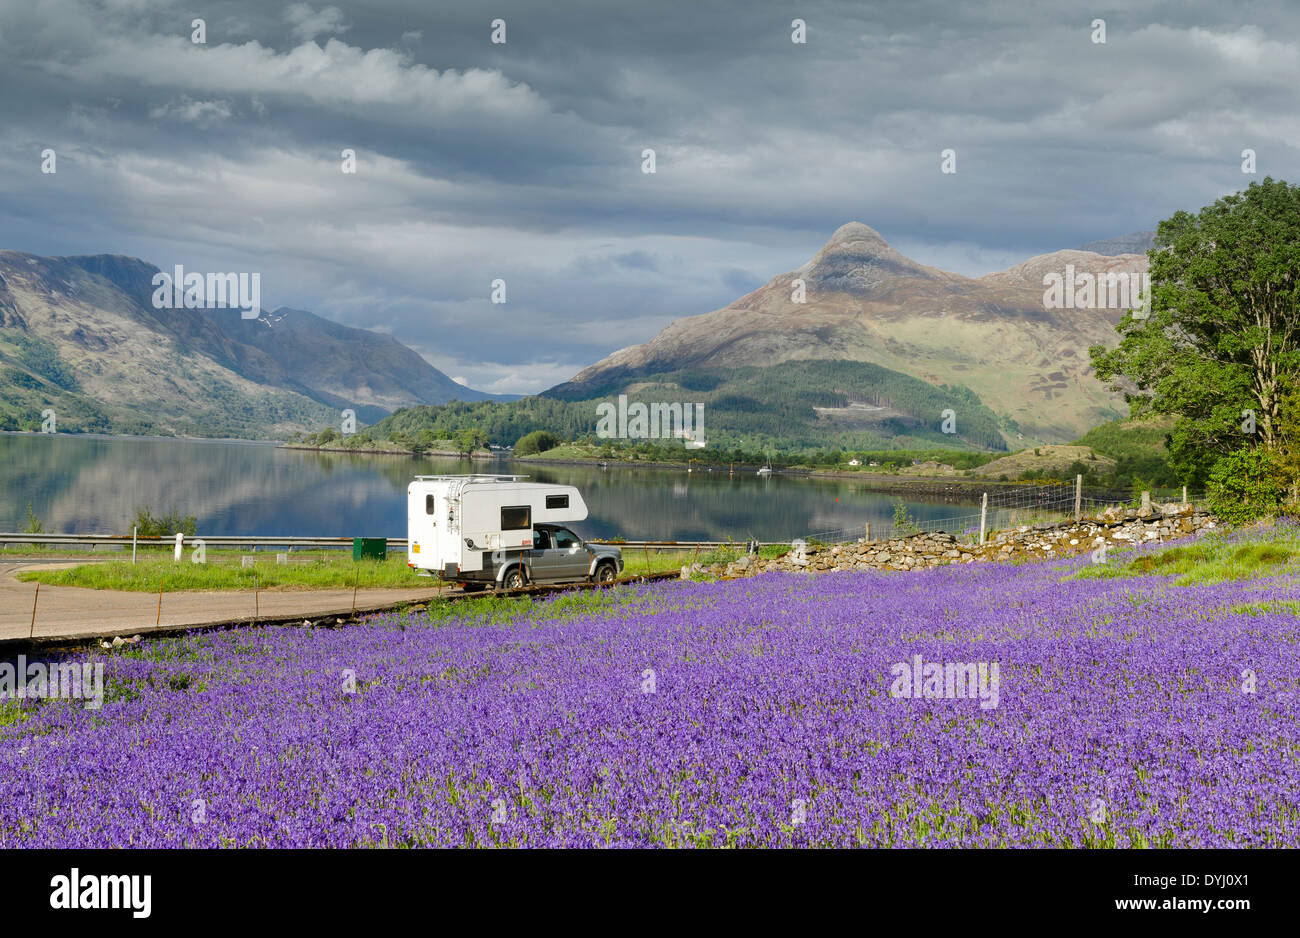 camper van at ballachulish and field of bluebells - Stock Image